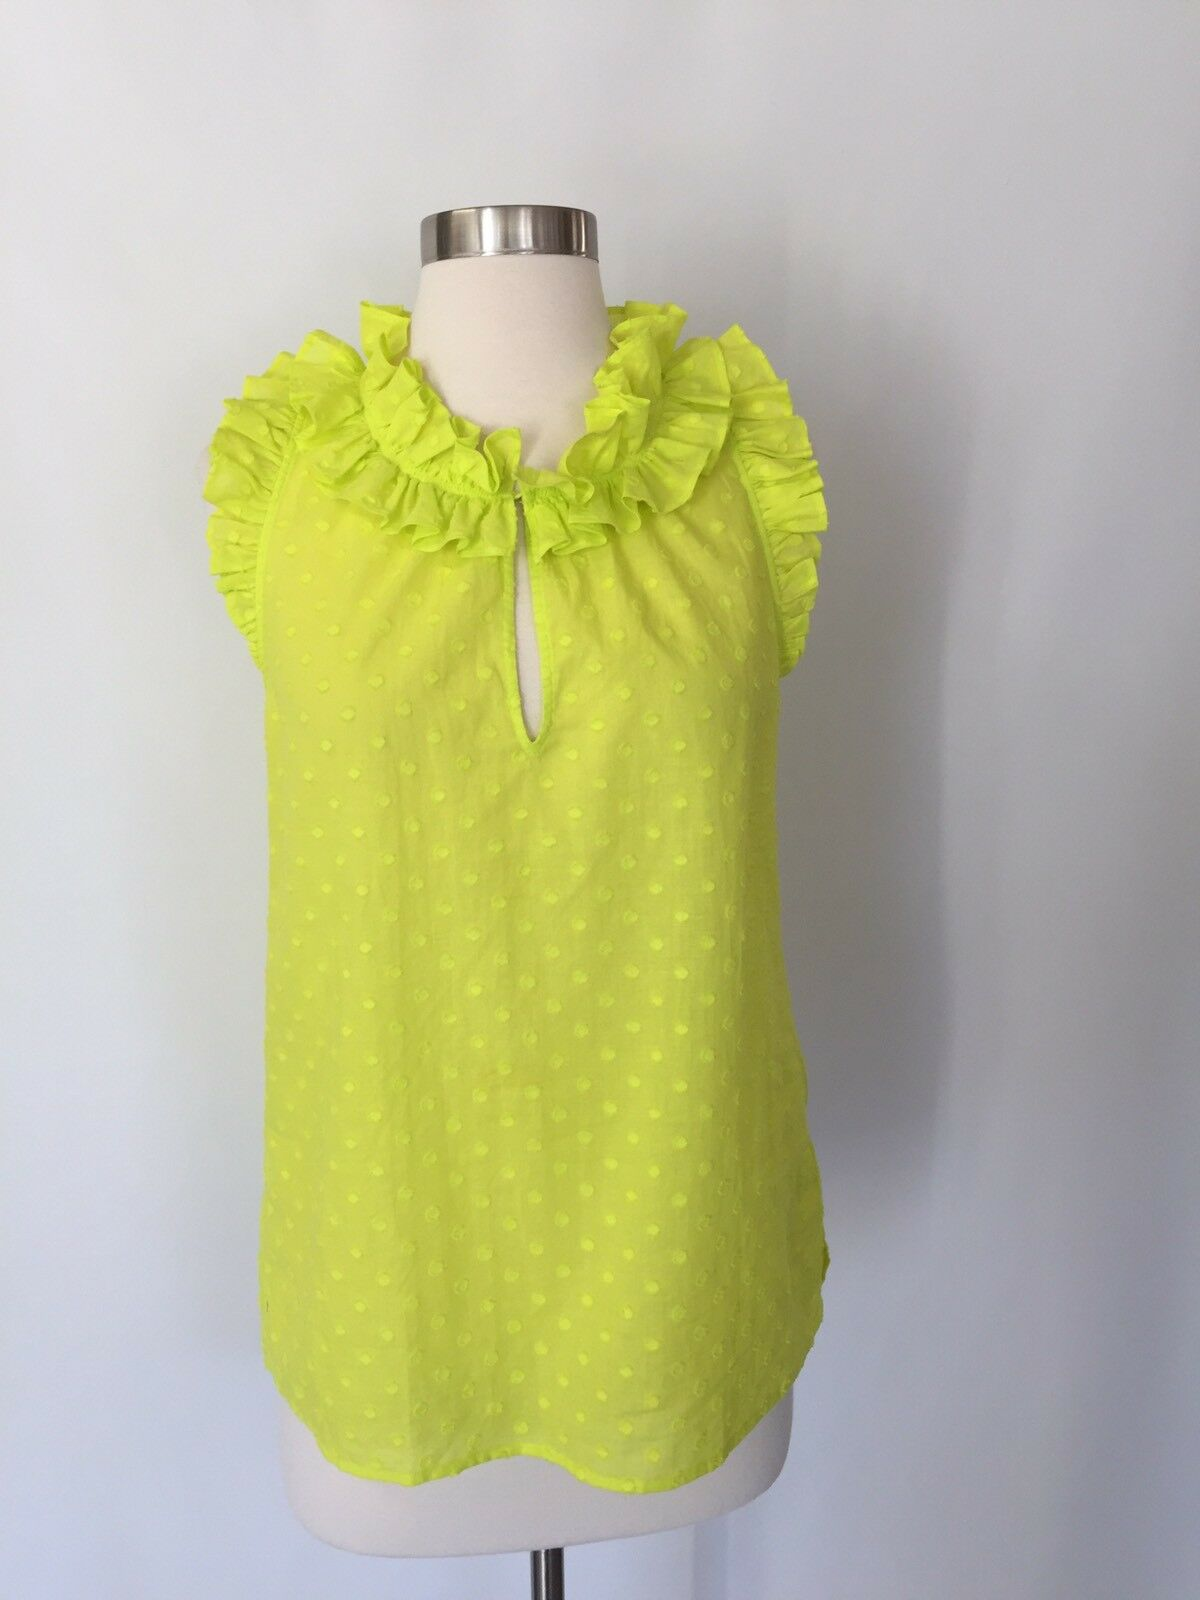 NWT JCREW Ruffle top in clip dot Größe 4 Bright Citrus G3710 SP17 SOLDOUT